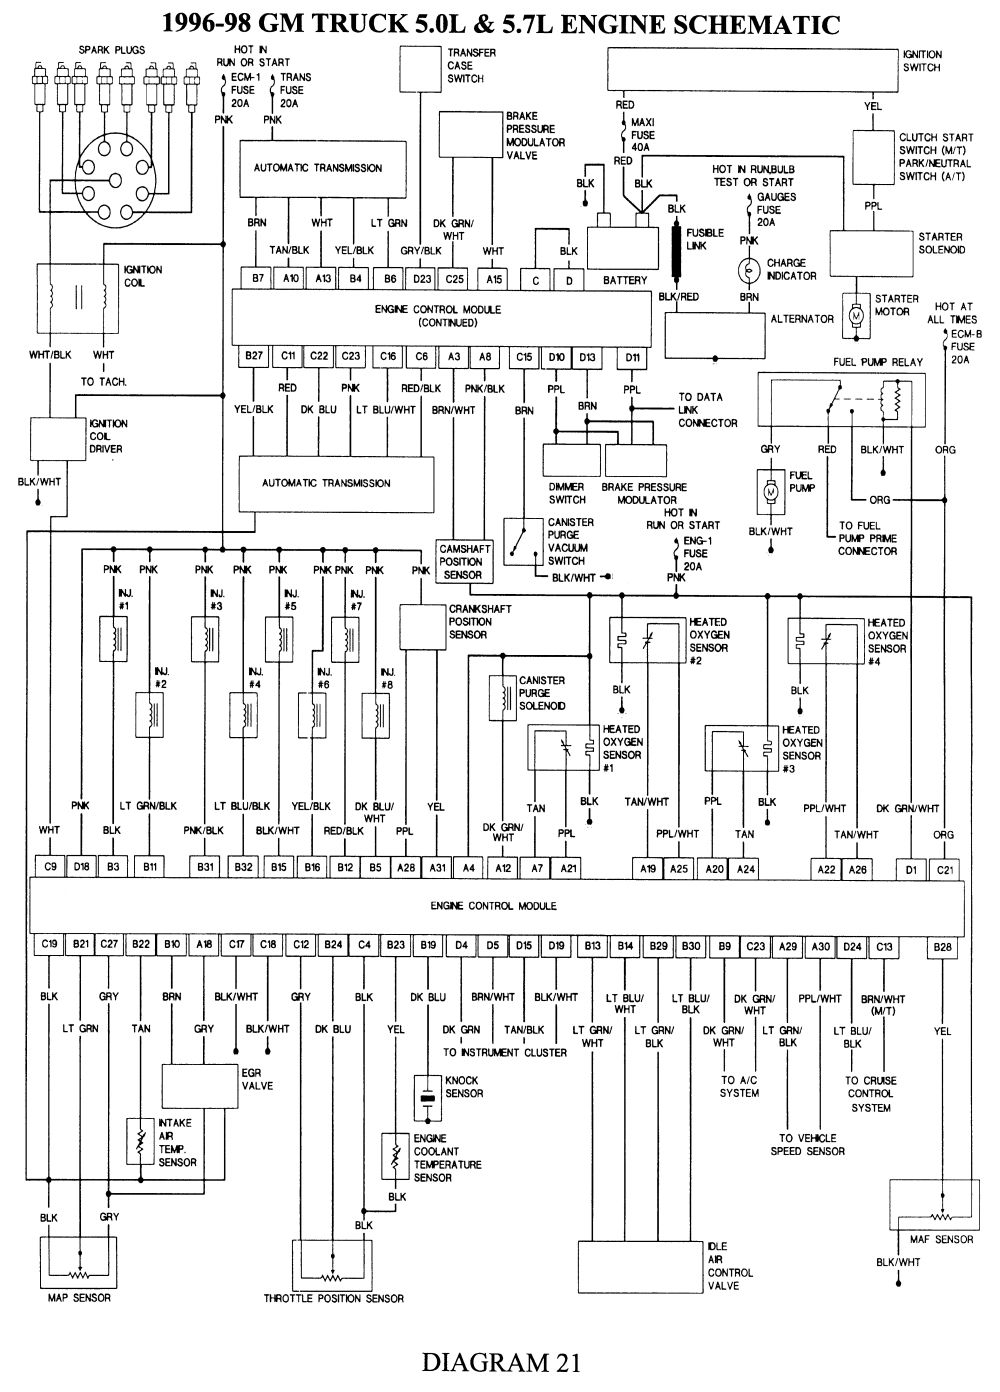 Electrical Wire Diagram 98 Chevrolet ... | Electrical diagram, Chevy  silverado, Repair guidePinterest